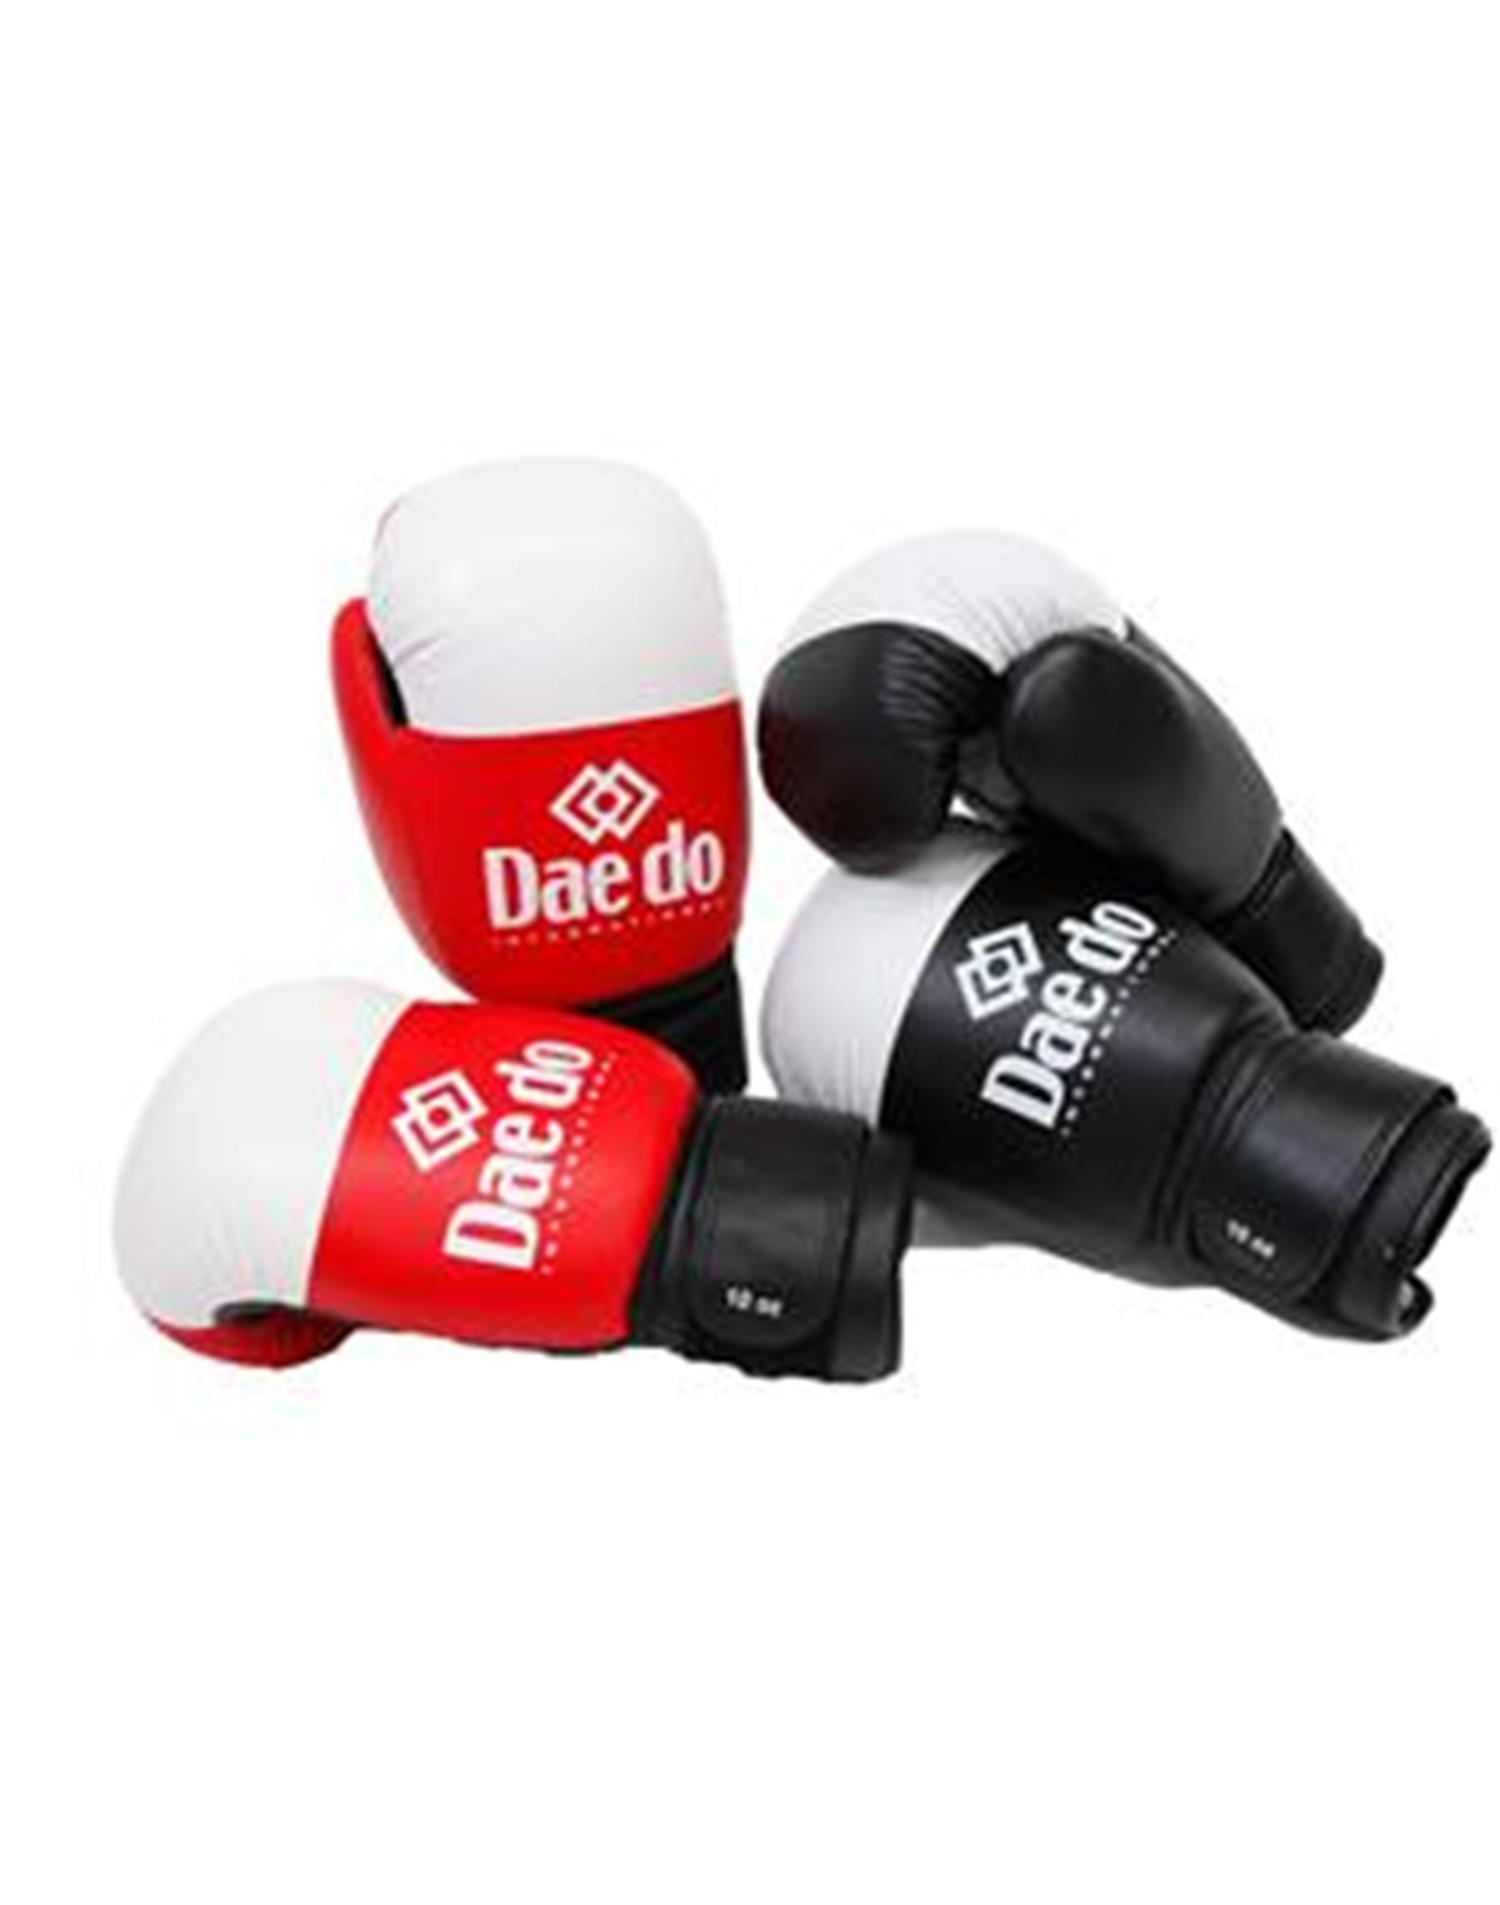 Dae Do Guanti Boxe multi Dae do Nero Bianco 8-oz